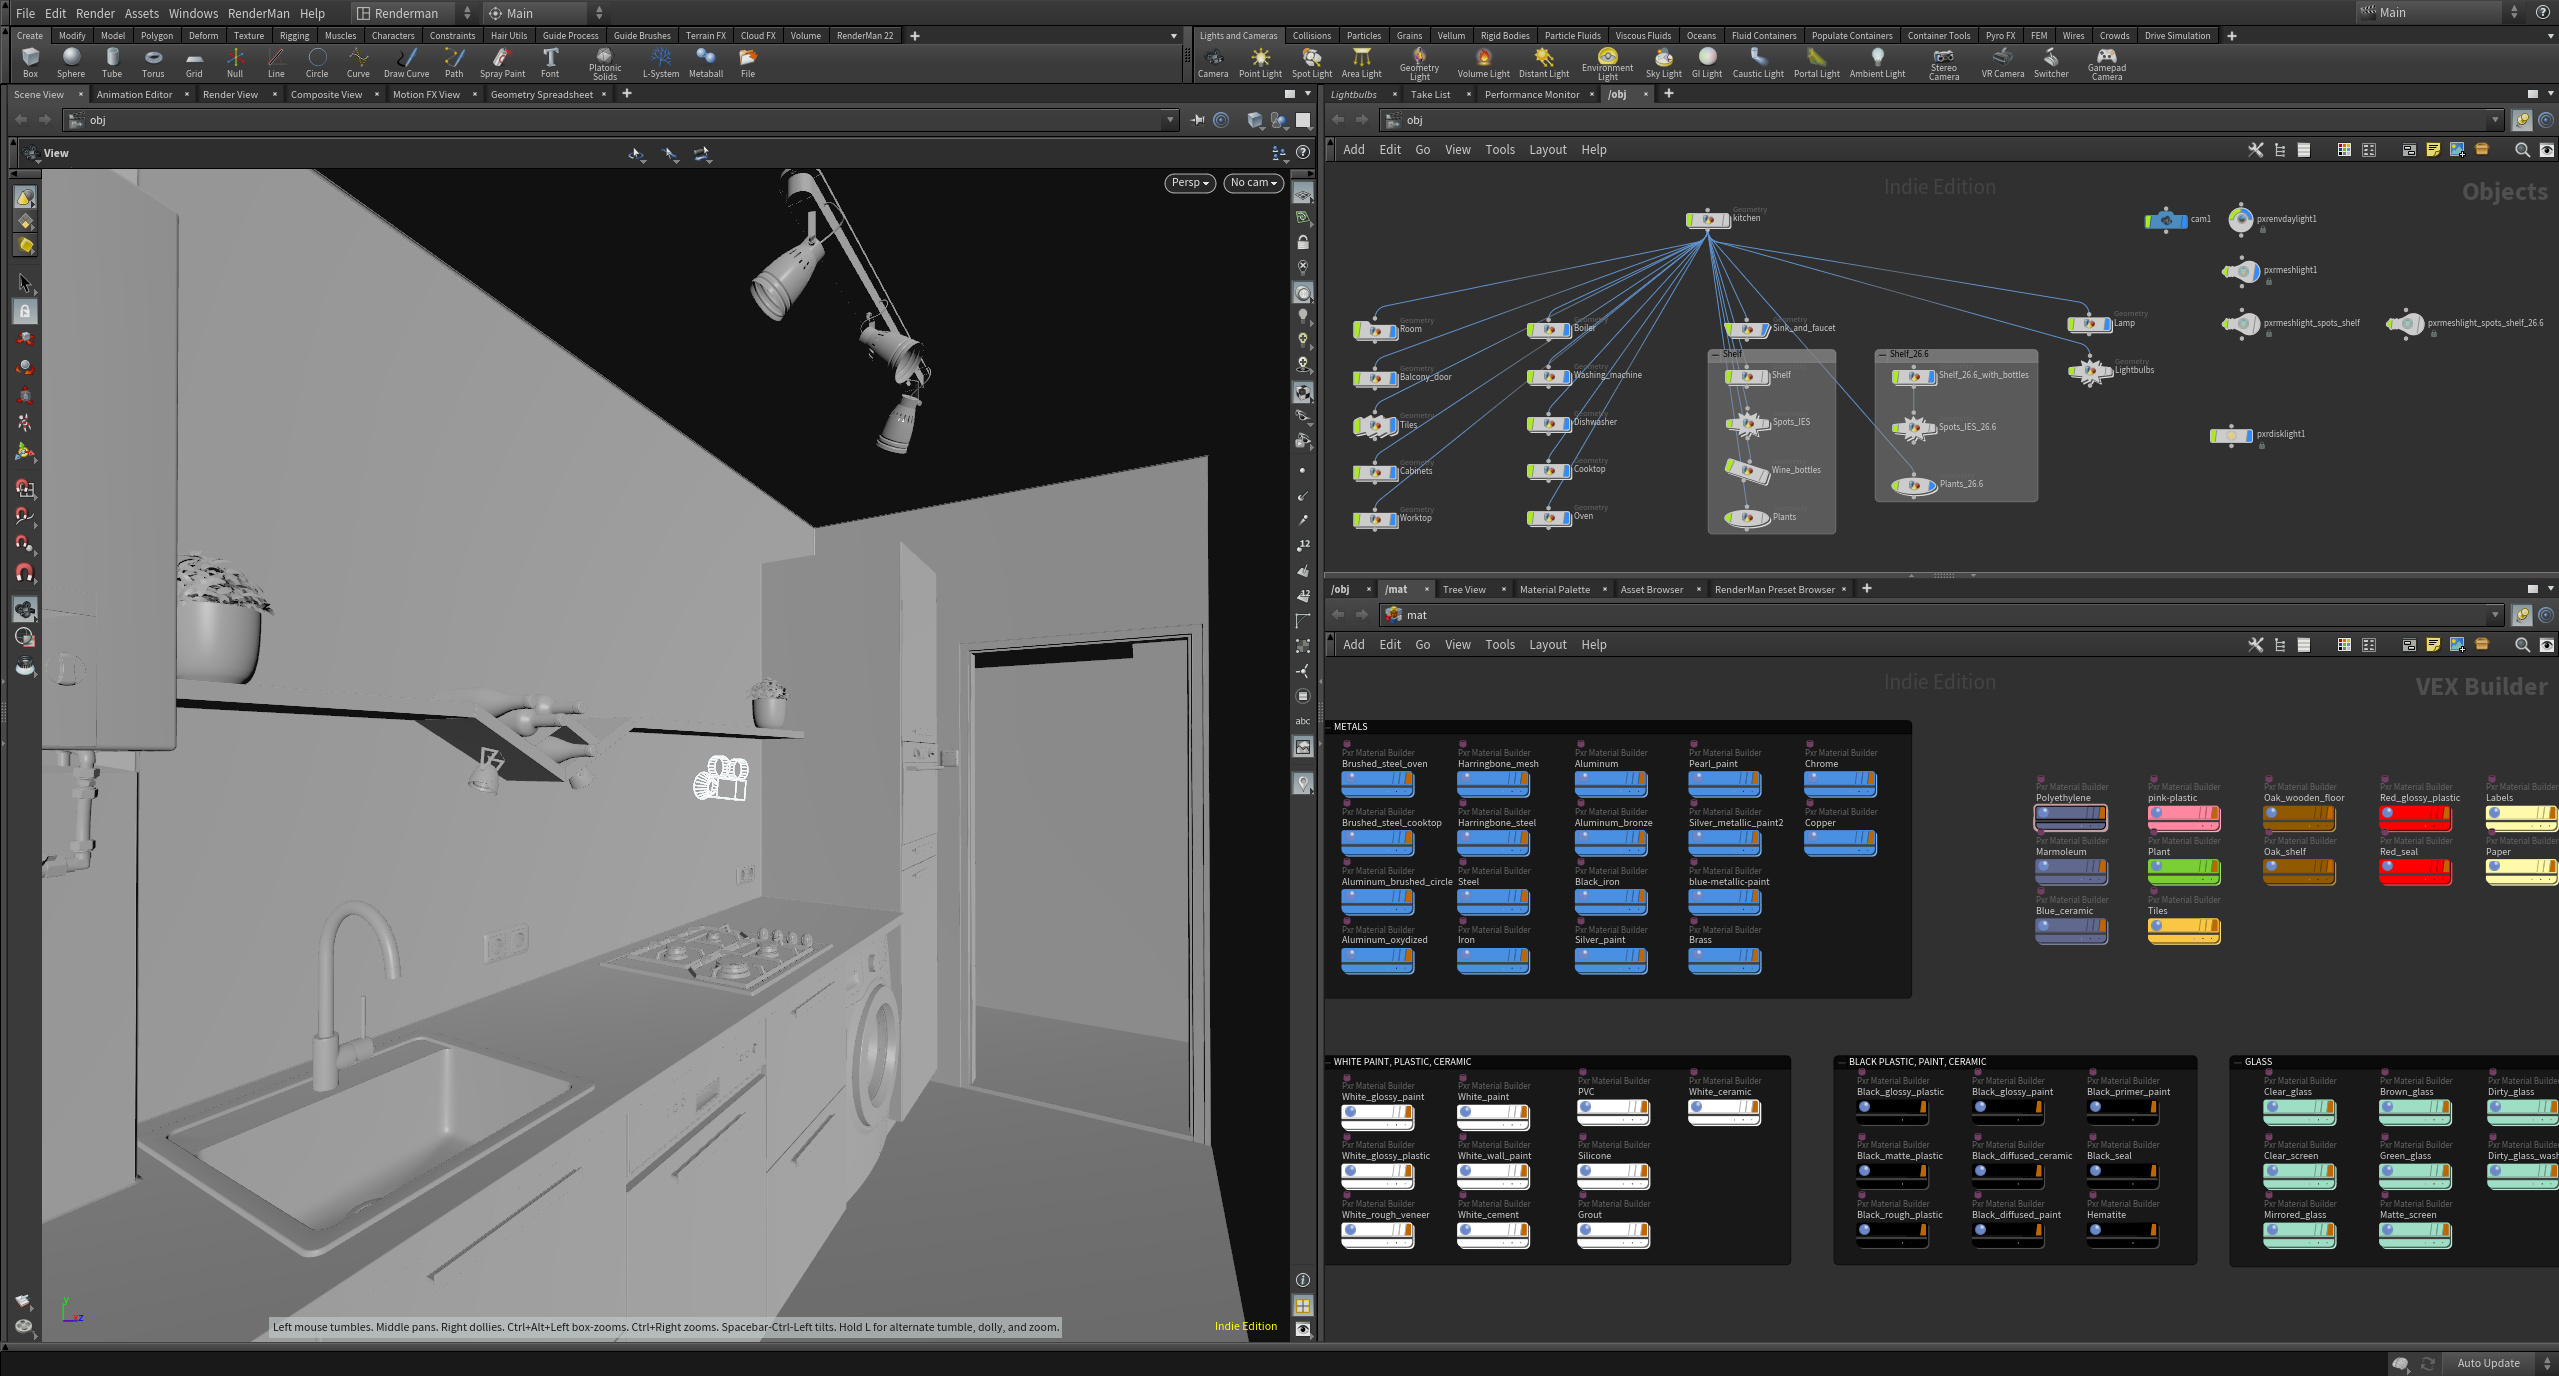 Scene and basic material setup in Houdini with Renderman